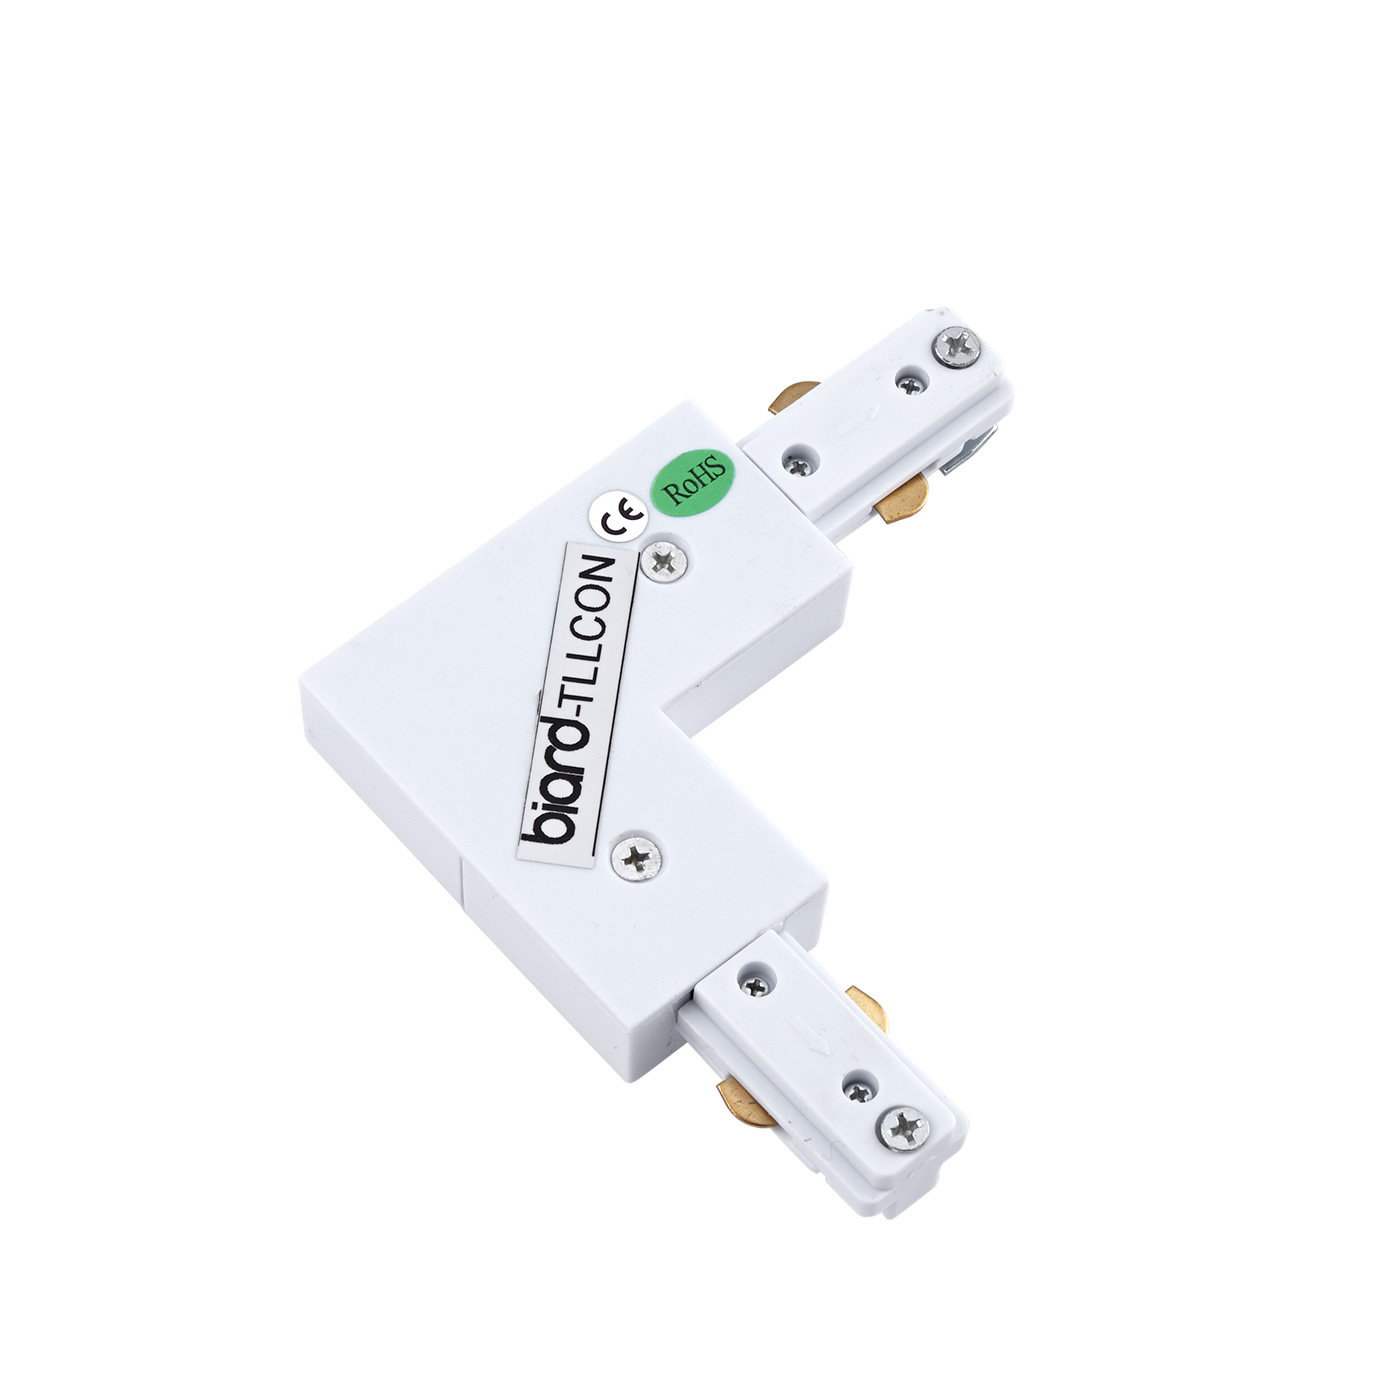 Biard L-Shaped Connector for Track Light - White